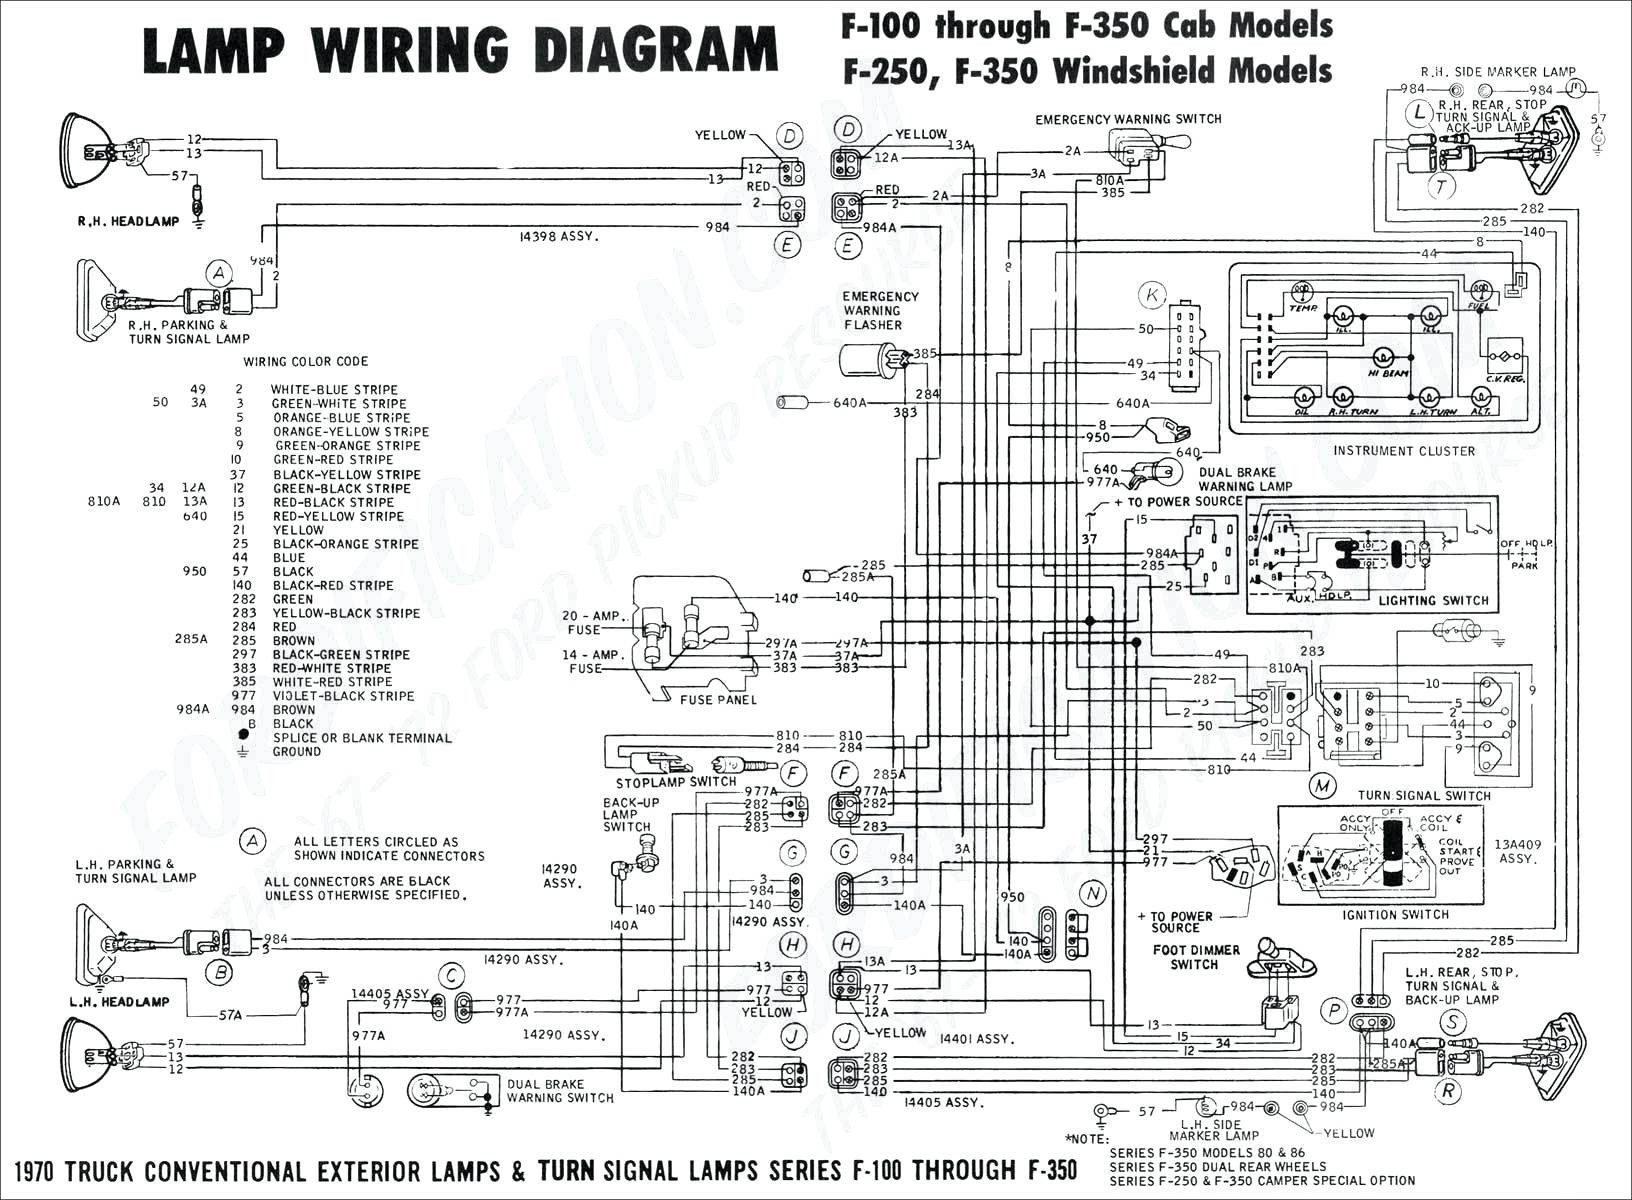 2005 chevy colorado wiring diagram free wiring diagram. Black Bedroom Furniture Sets. Home Design Ideas